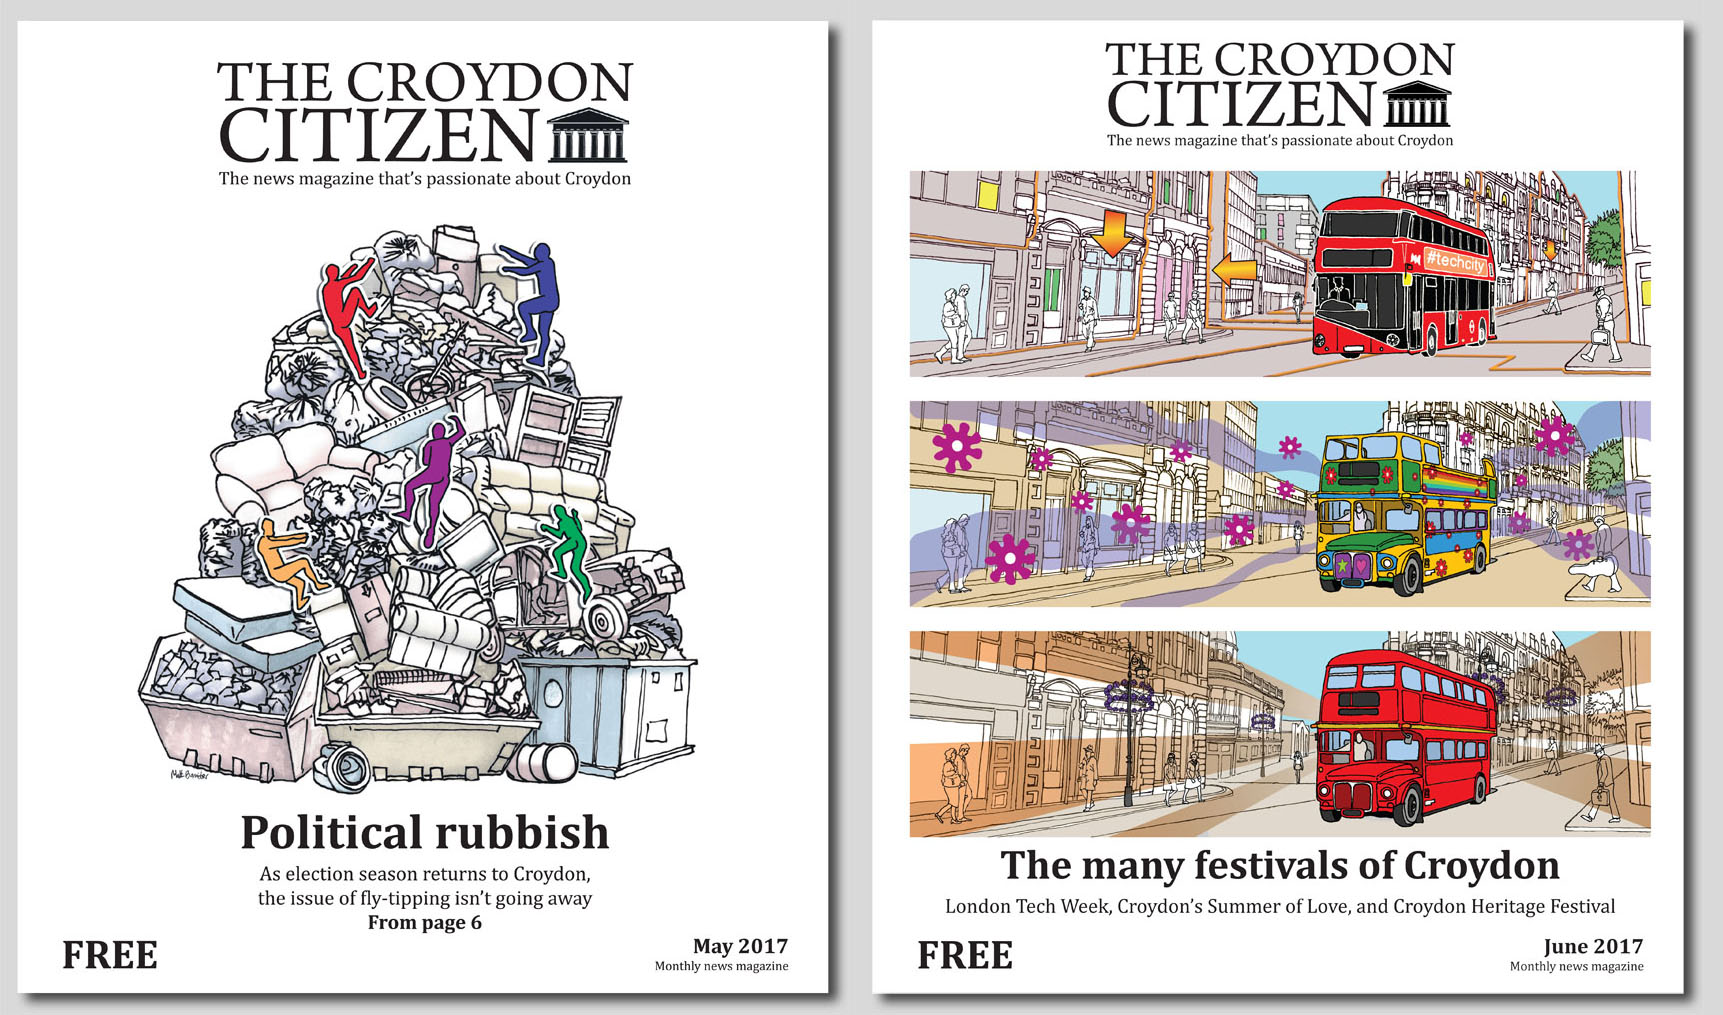 cover illustrations from The Croydon Citizen